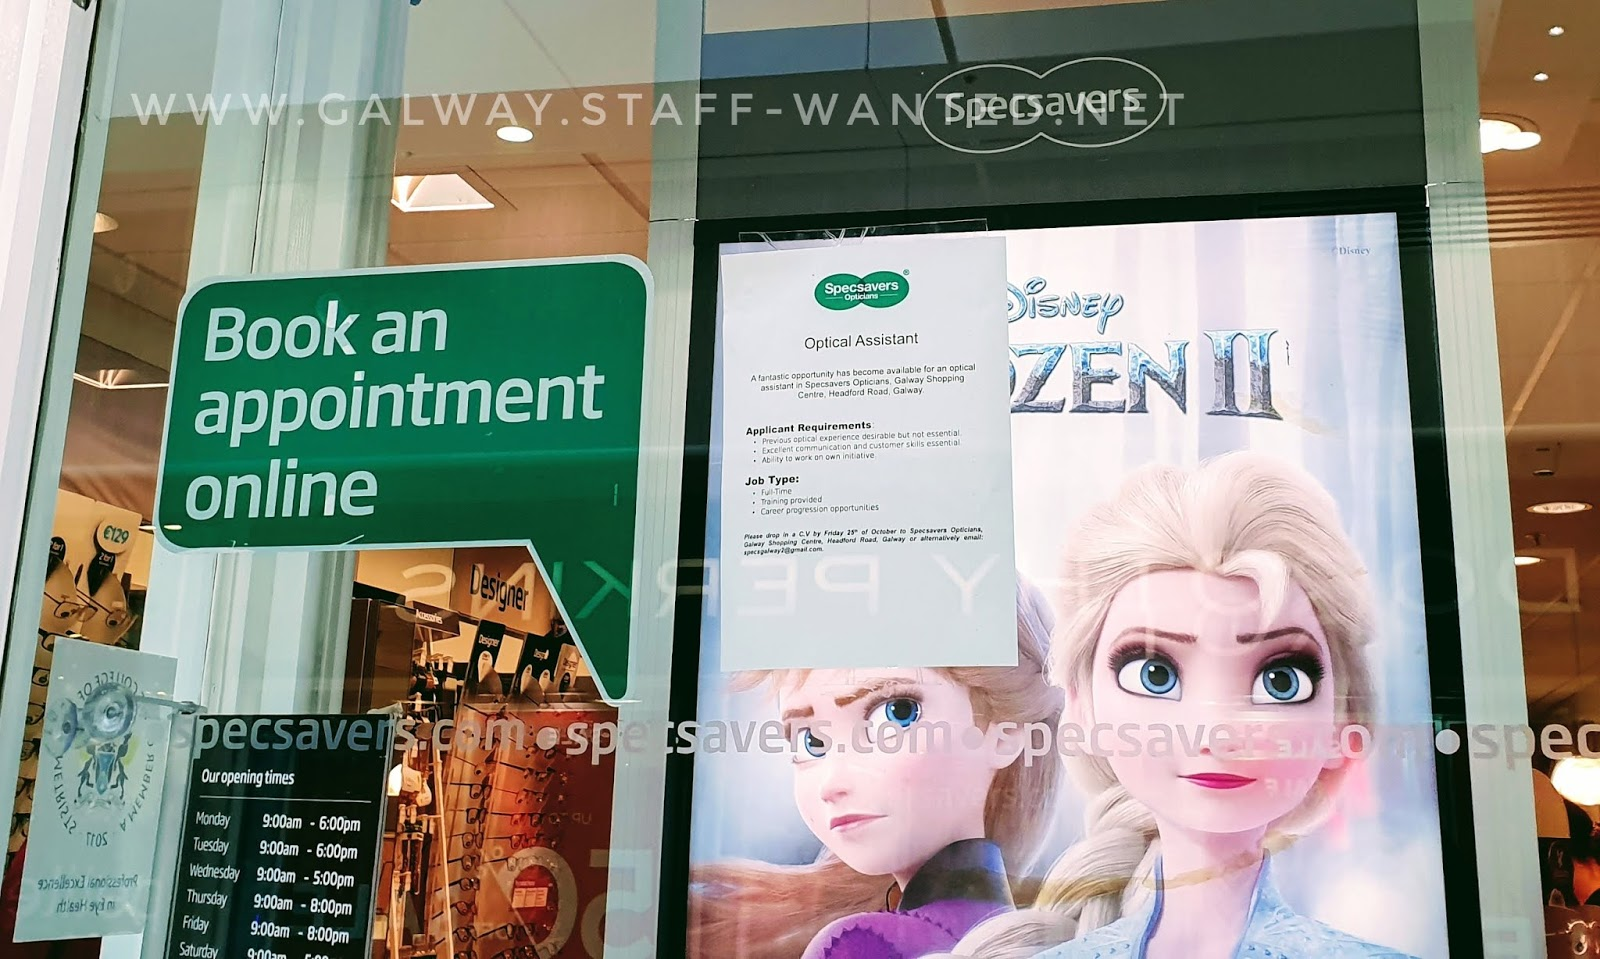 Specsavers shop-front with a visual display unit that has a Frozen poster, and showing opening hours Secsavers Galway Shopping Cetntre - opens 9am every day, closes 6pm Mon and Tues, 5pm Wed, Sat and Sun, and 8pm Thurs and Friday